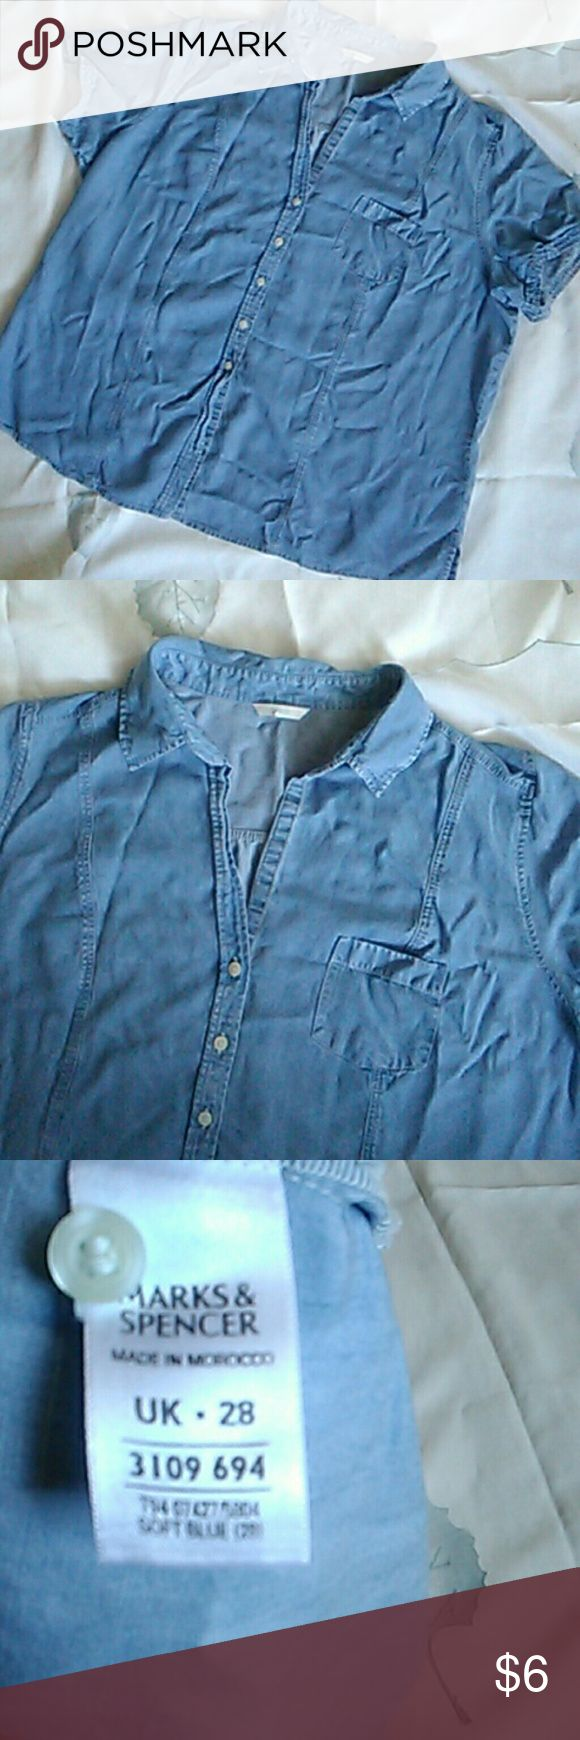 Blouse Marks & Spencer Shirt, front pocket.100% lyocell. Shirt has blue jean look. Worn, short is soft to the touch. The size is up 28, in us approx. A plus size 24. Marks & Spencer Tops Button Down Shirts